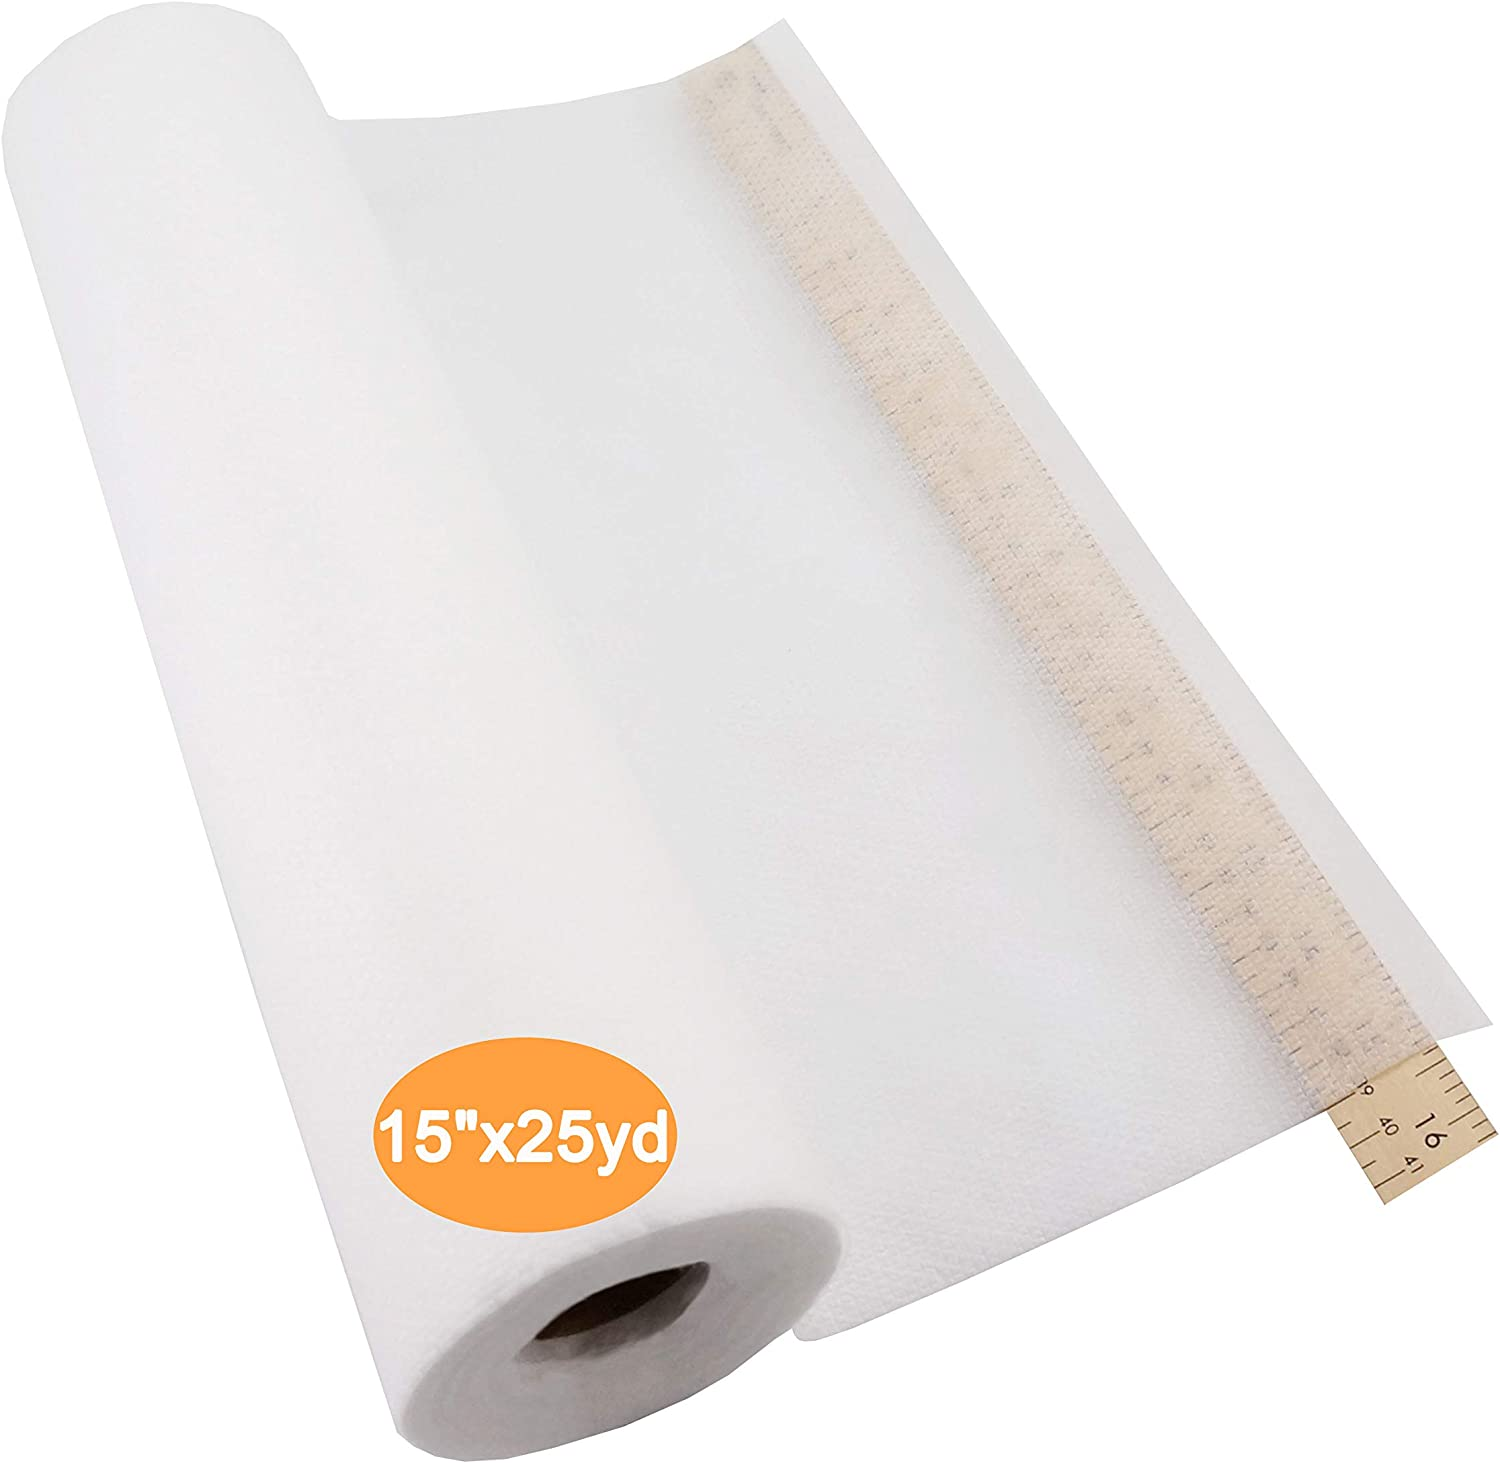 Cut into Any Sizes Medium Weight 1.8 oz for Machine Embroidery and Hand Sewing New brothread Tear Away Machine Embroidery Stabilizer Backing 20 x 25 Yd roll